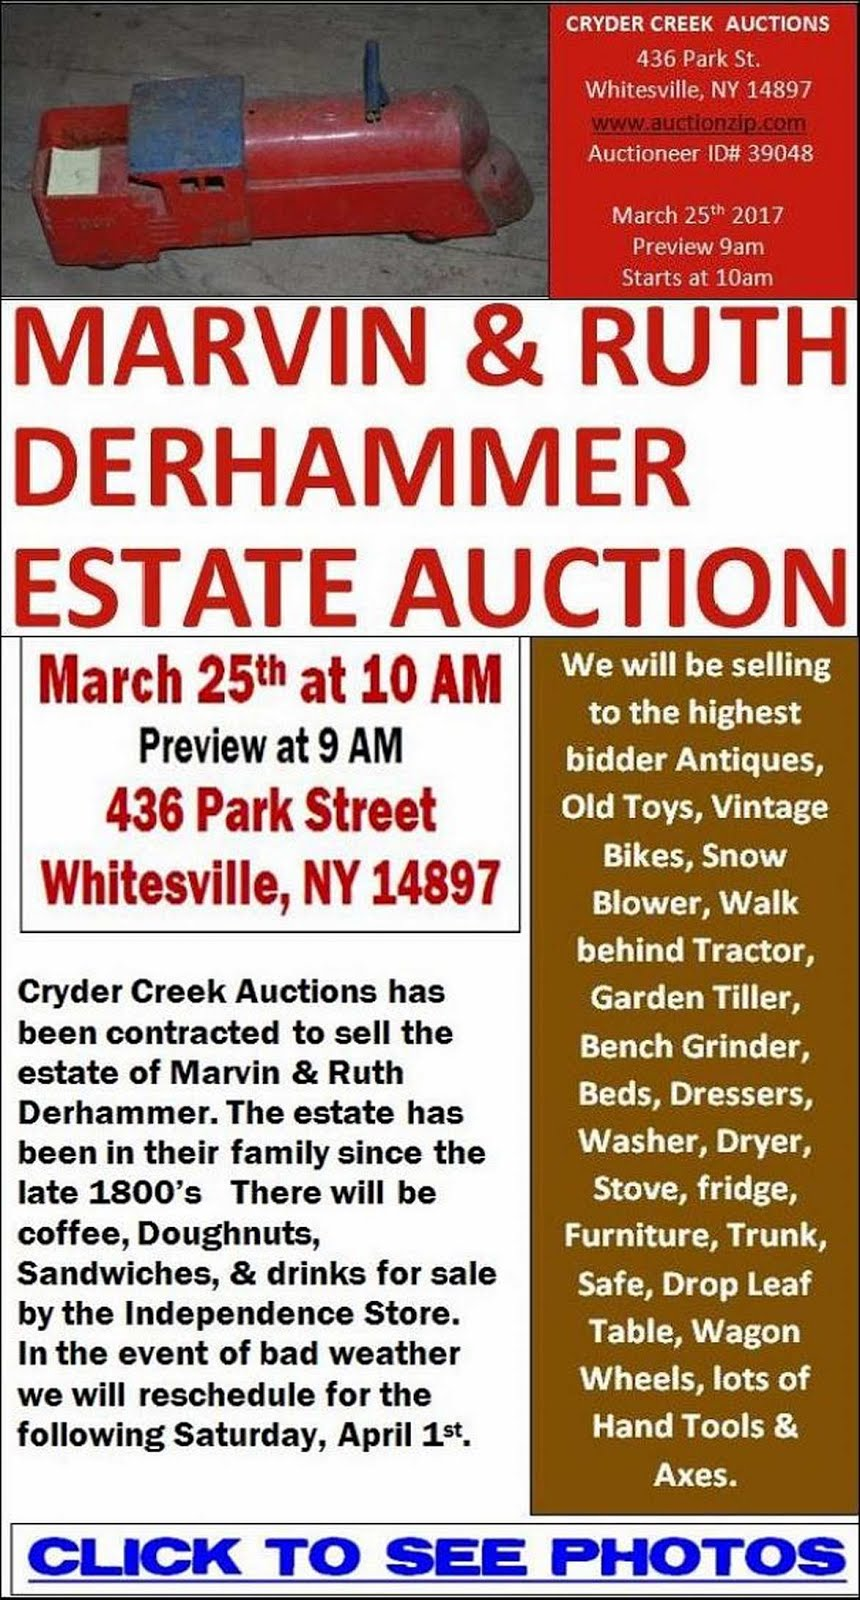 Derhammer Auction